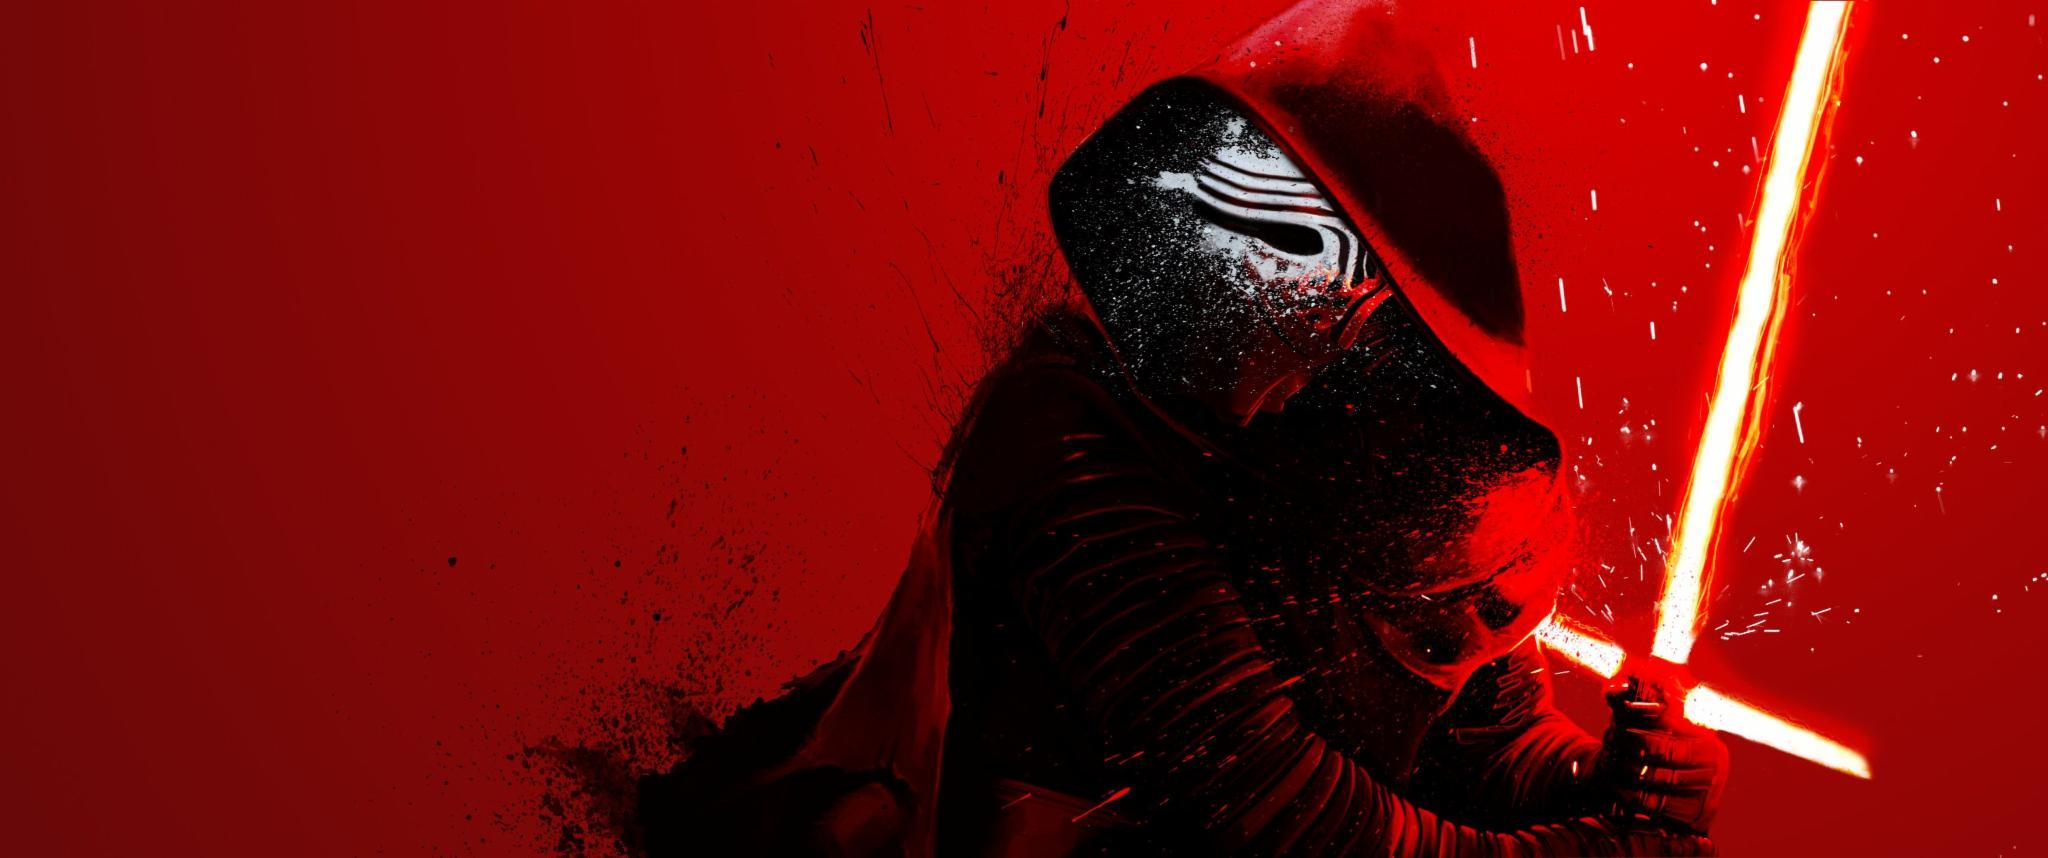 Opinion on Kylo Ren?